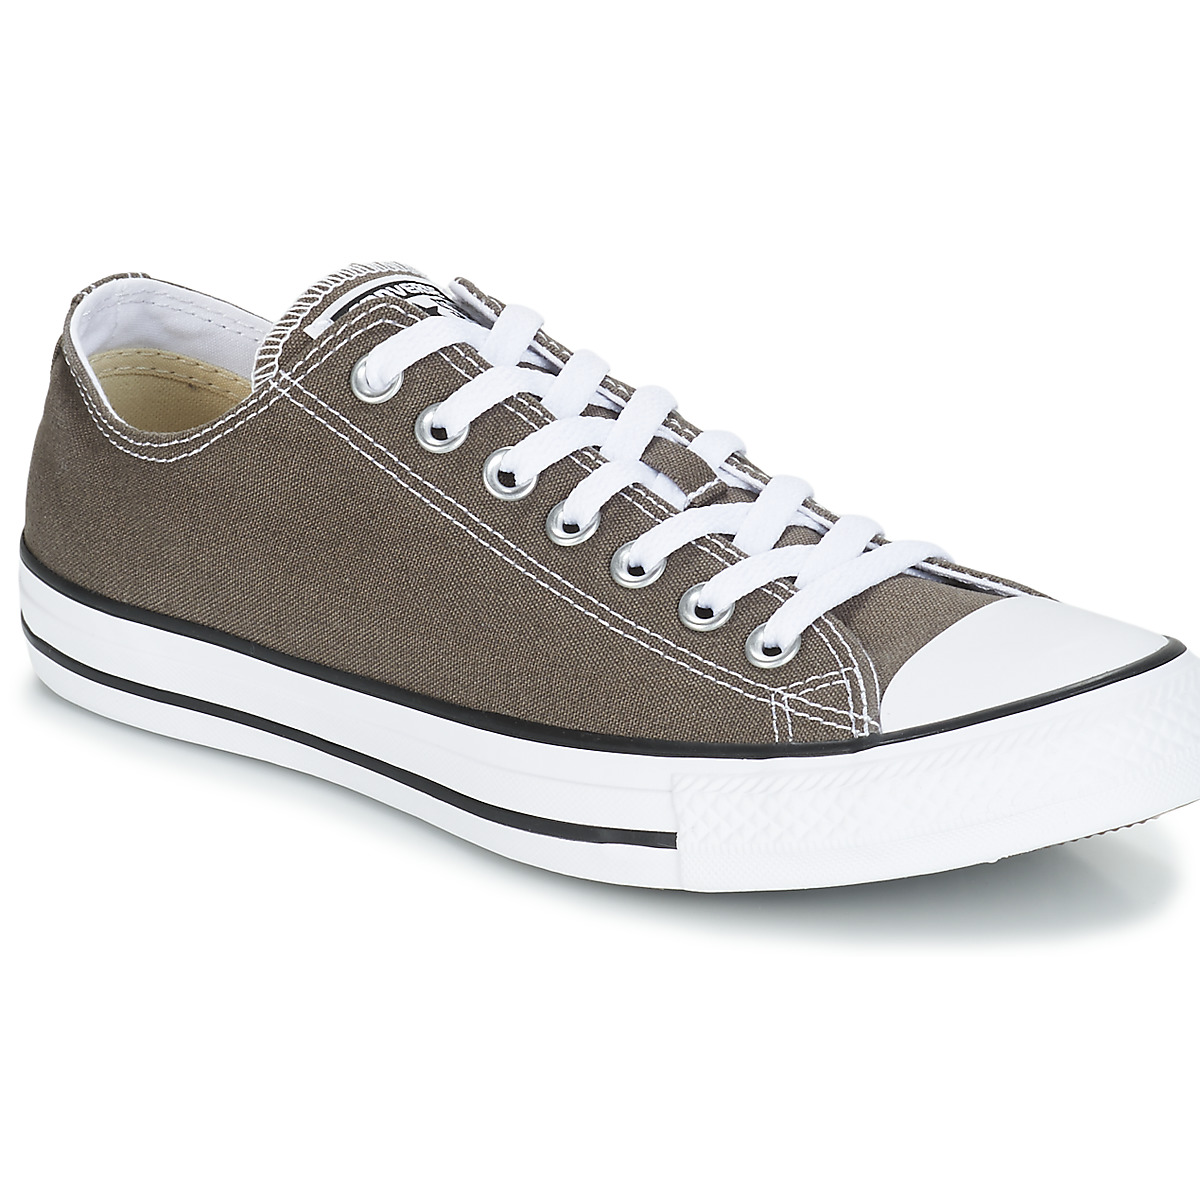 dacbbbf173c4c Chaussures Baskets basses Converse CHUCK TAYLOR ALL STAR CORE OX Anthracite